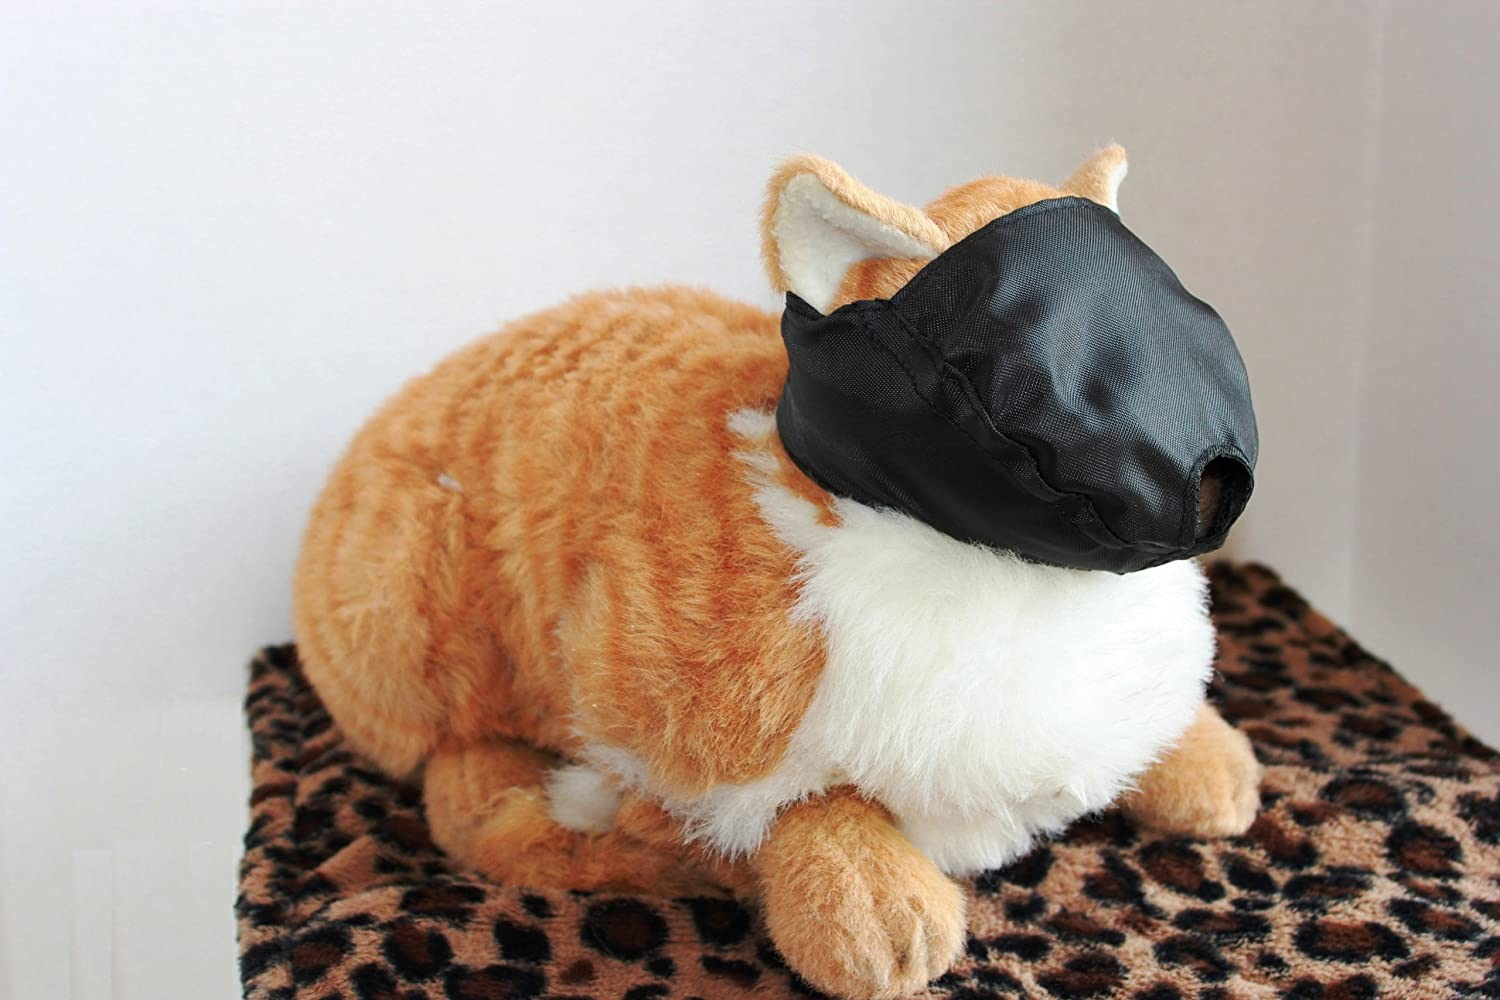 ff33277ffcf Amazon.com : Cat Muzzle - MEDIUM fits cats 6 - 12 lbs - BLACK, by Downtown  Downtown Pet Supply : Pet Supplies